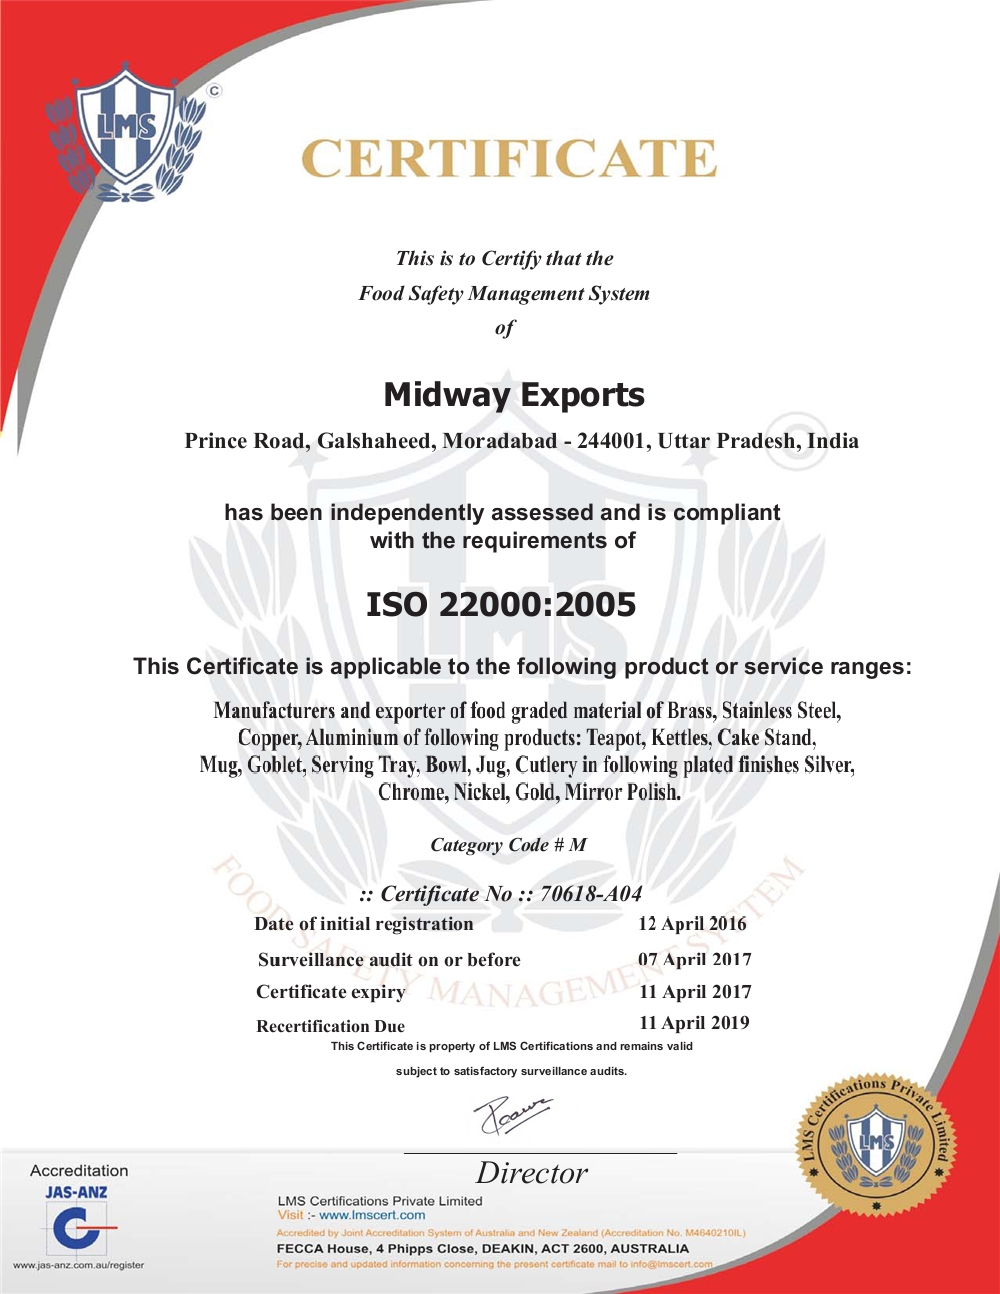 Certificates - Midway Exports from Moradabad Uttar Pradesh India